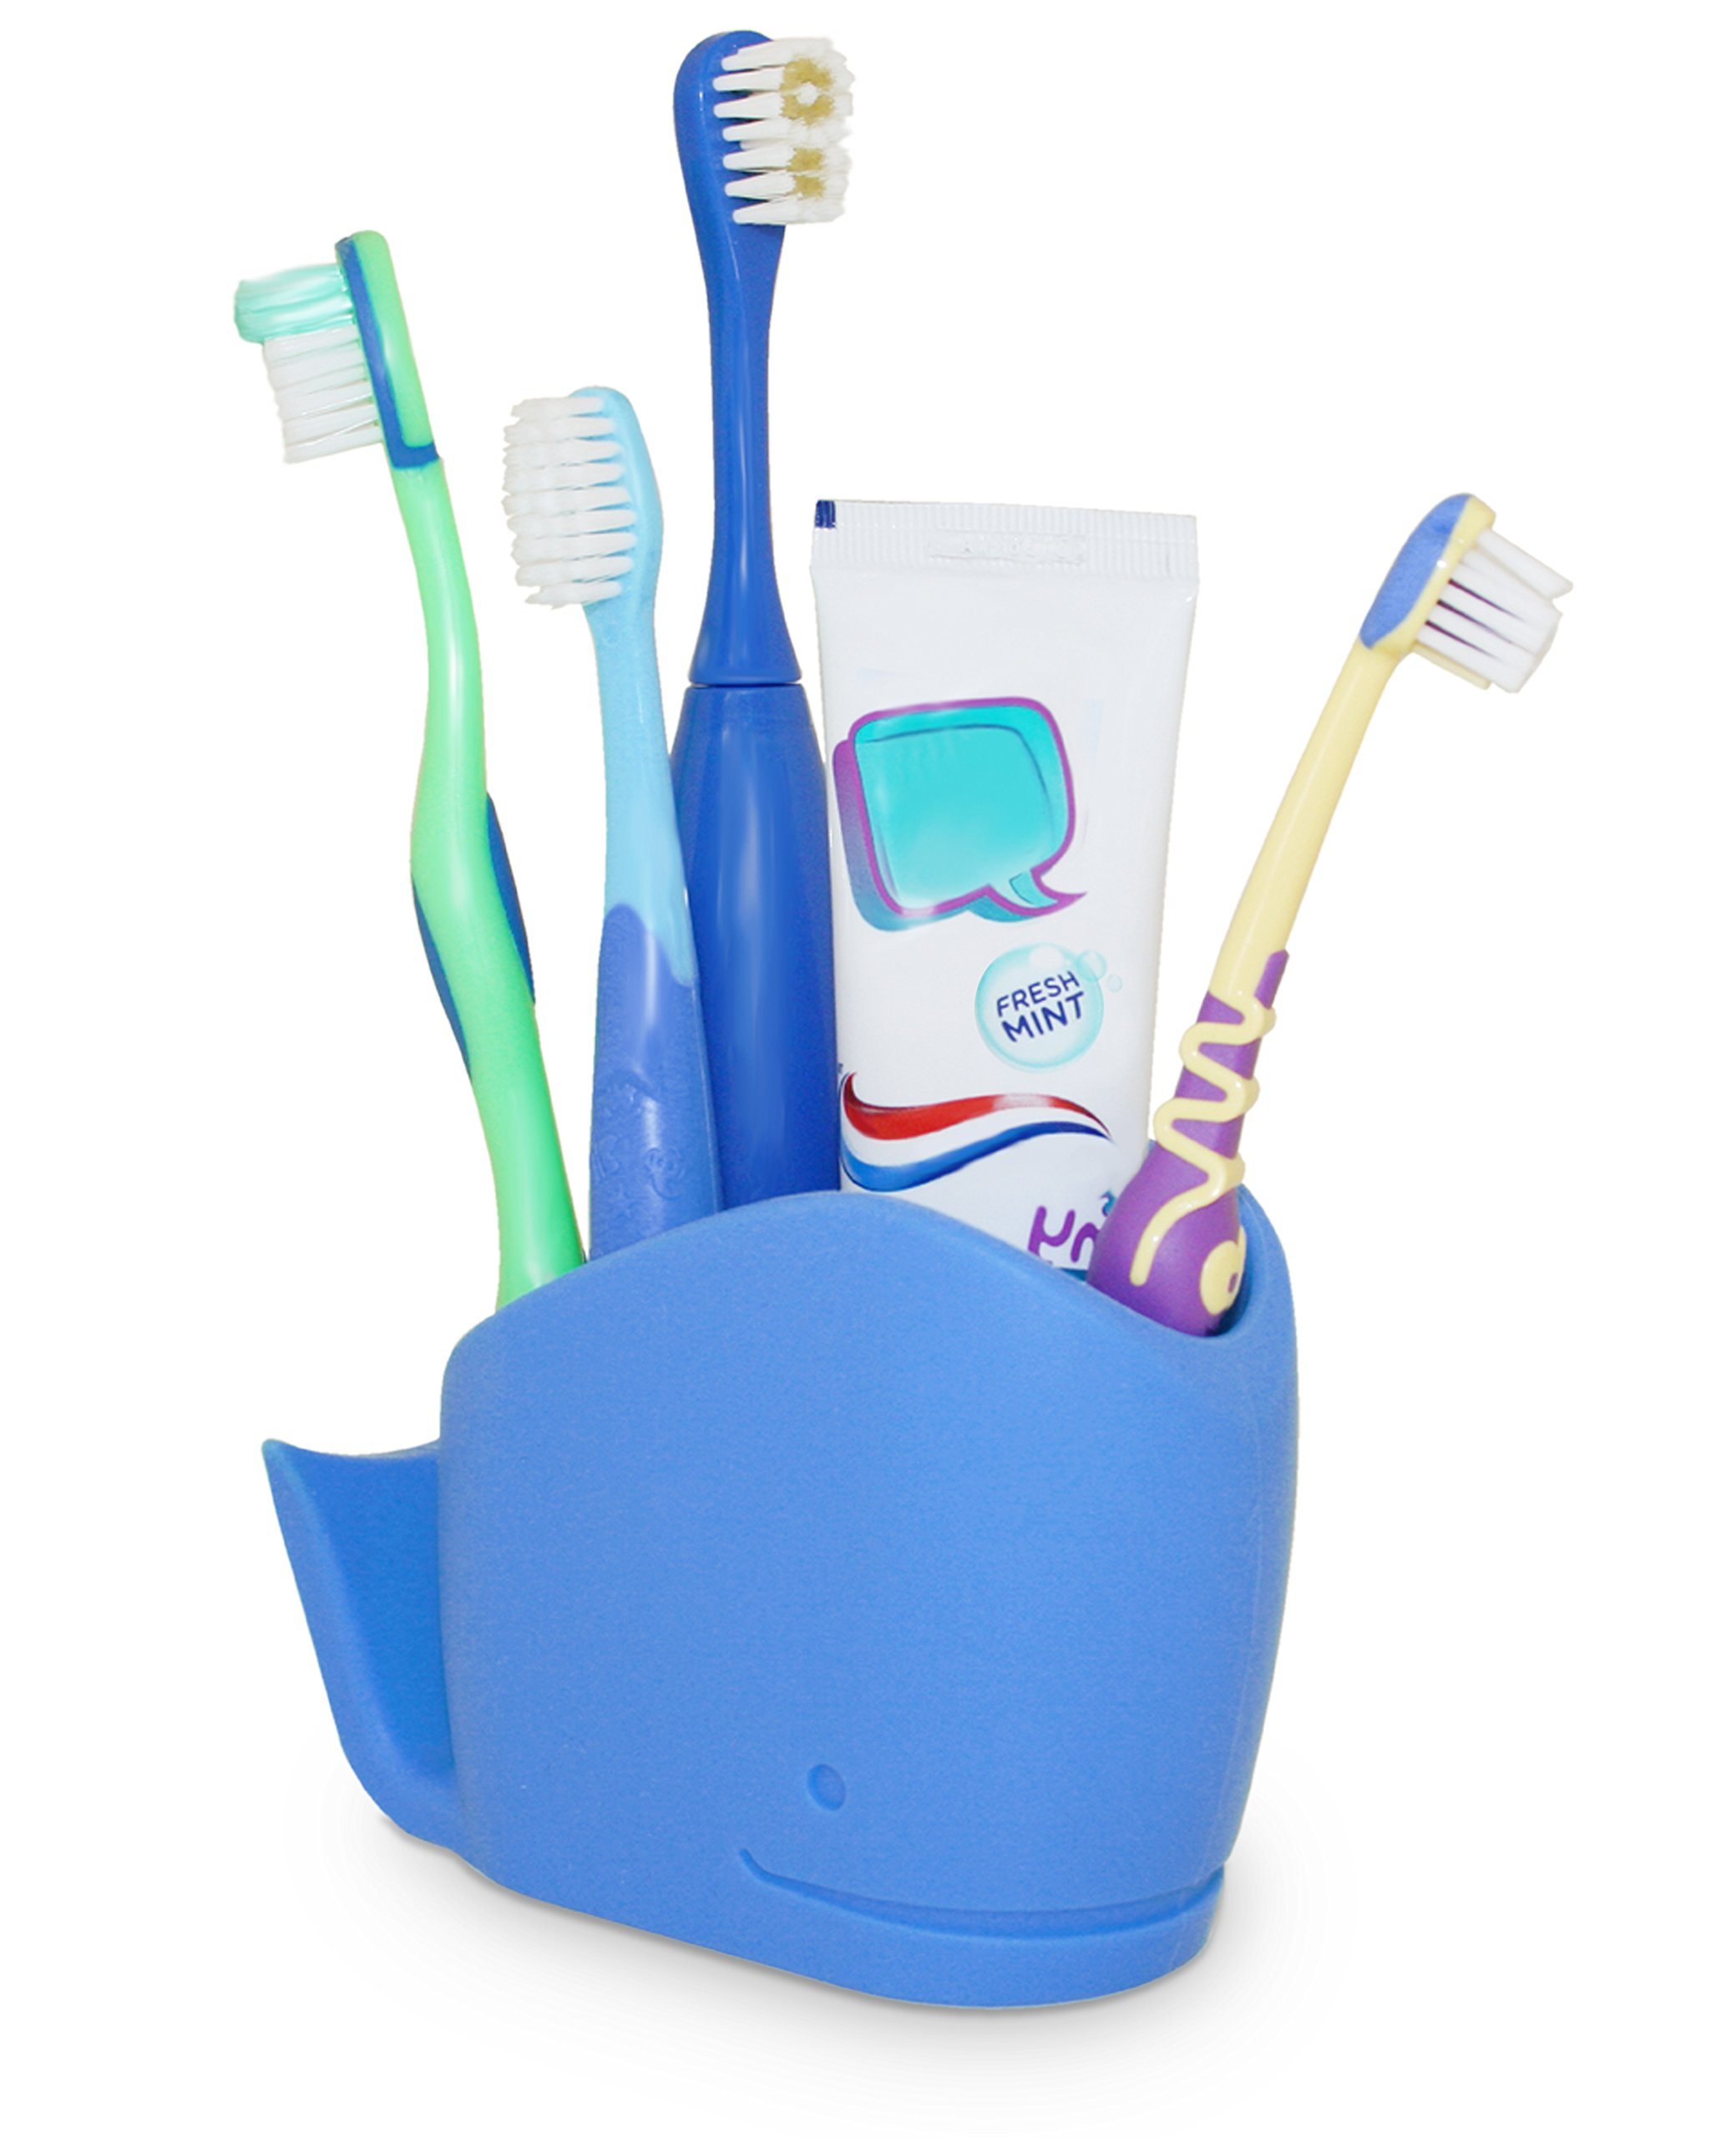 j-me Whale Toothbrush Holder for Kids - Children's Bathroom Storage Organizer for Toothpaste, Toothbrushes and More - Non Slip Bathroom Tidy by j-me